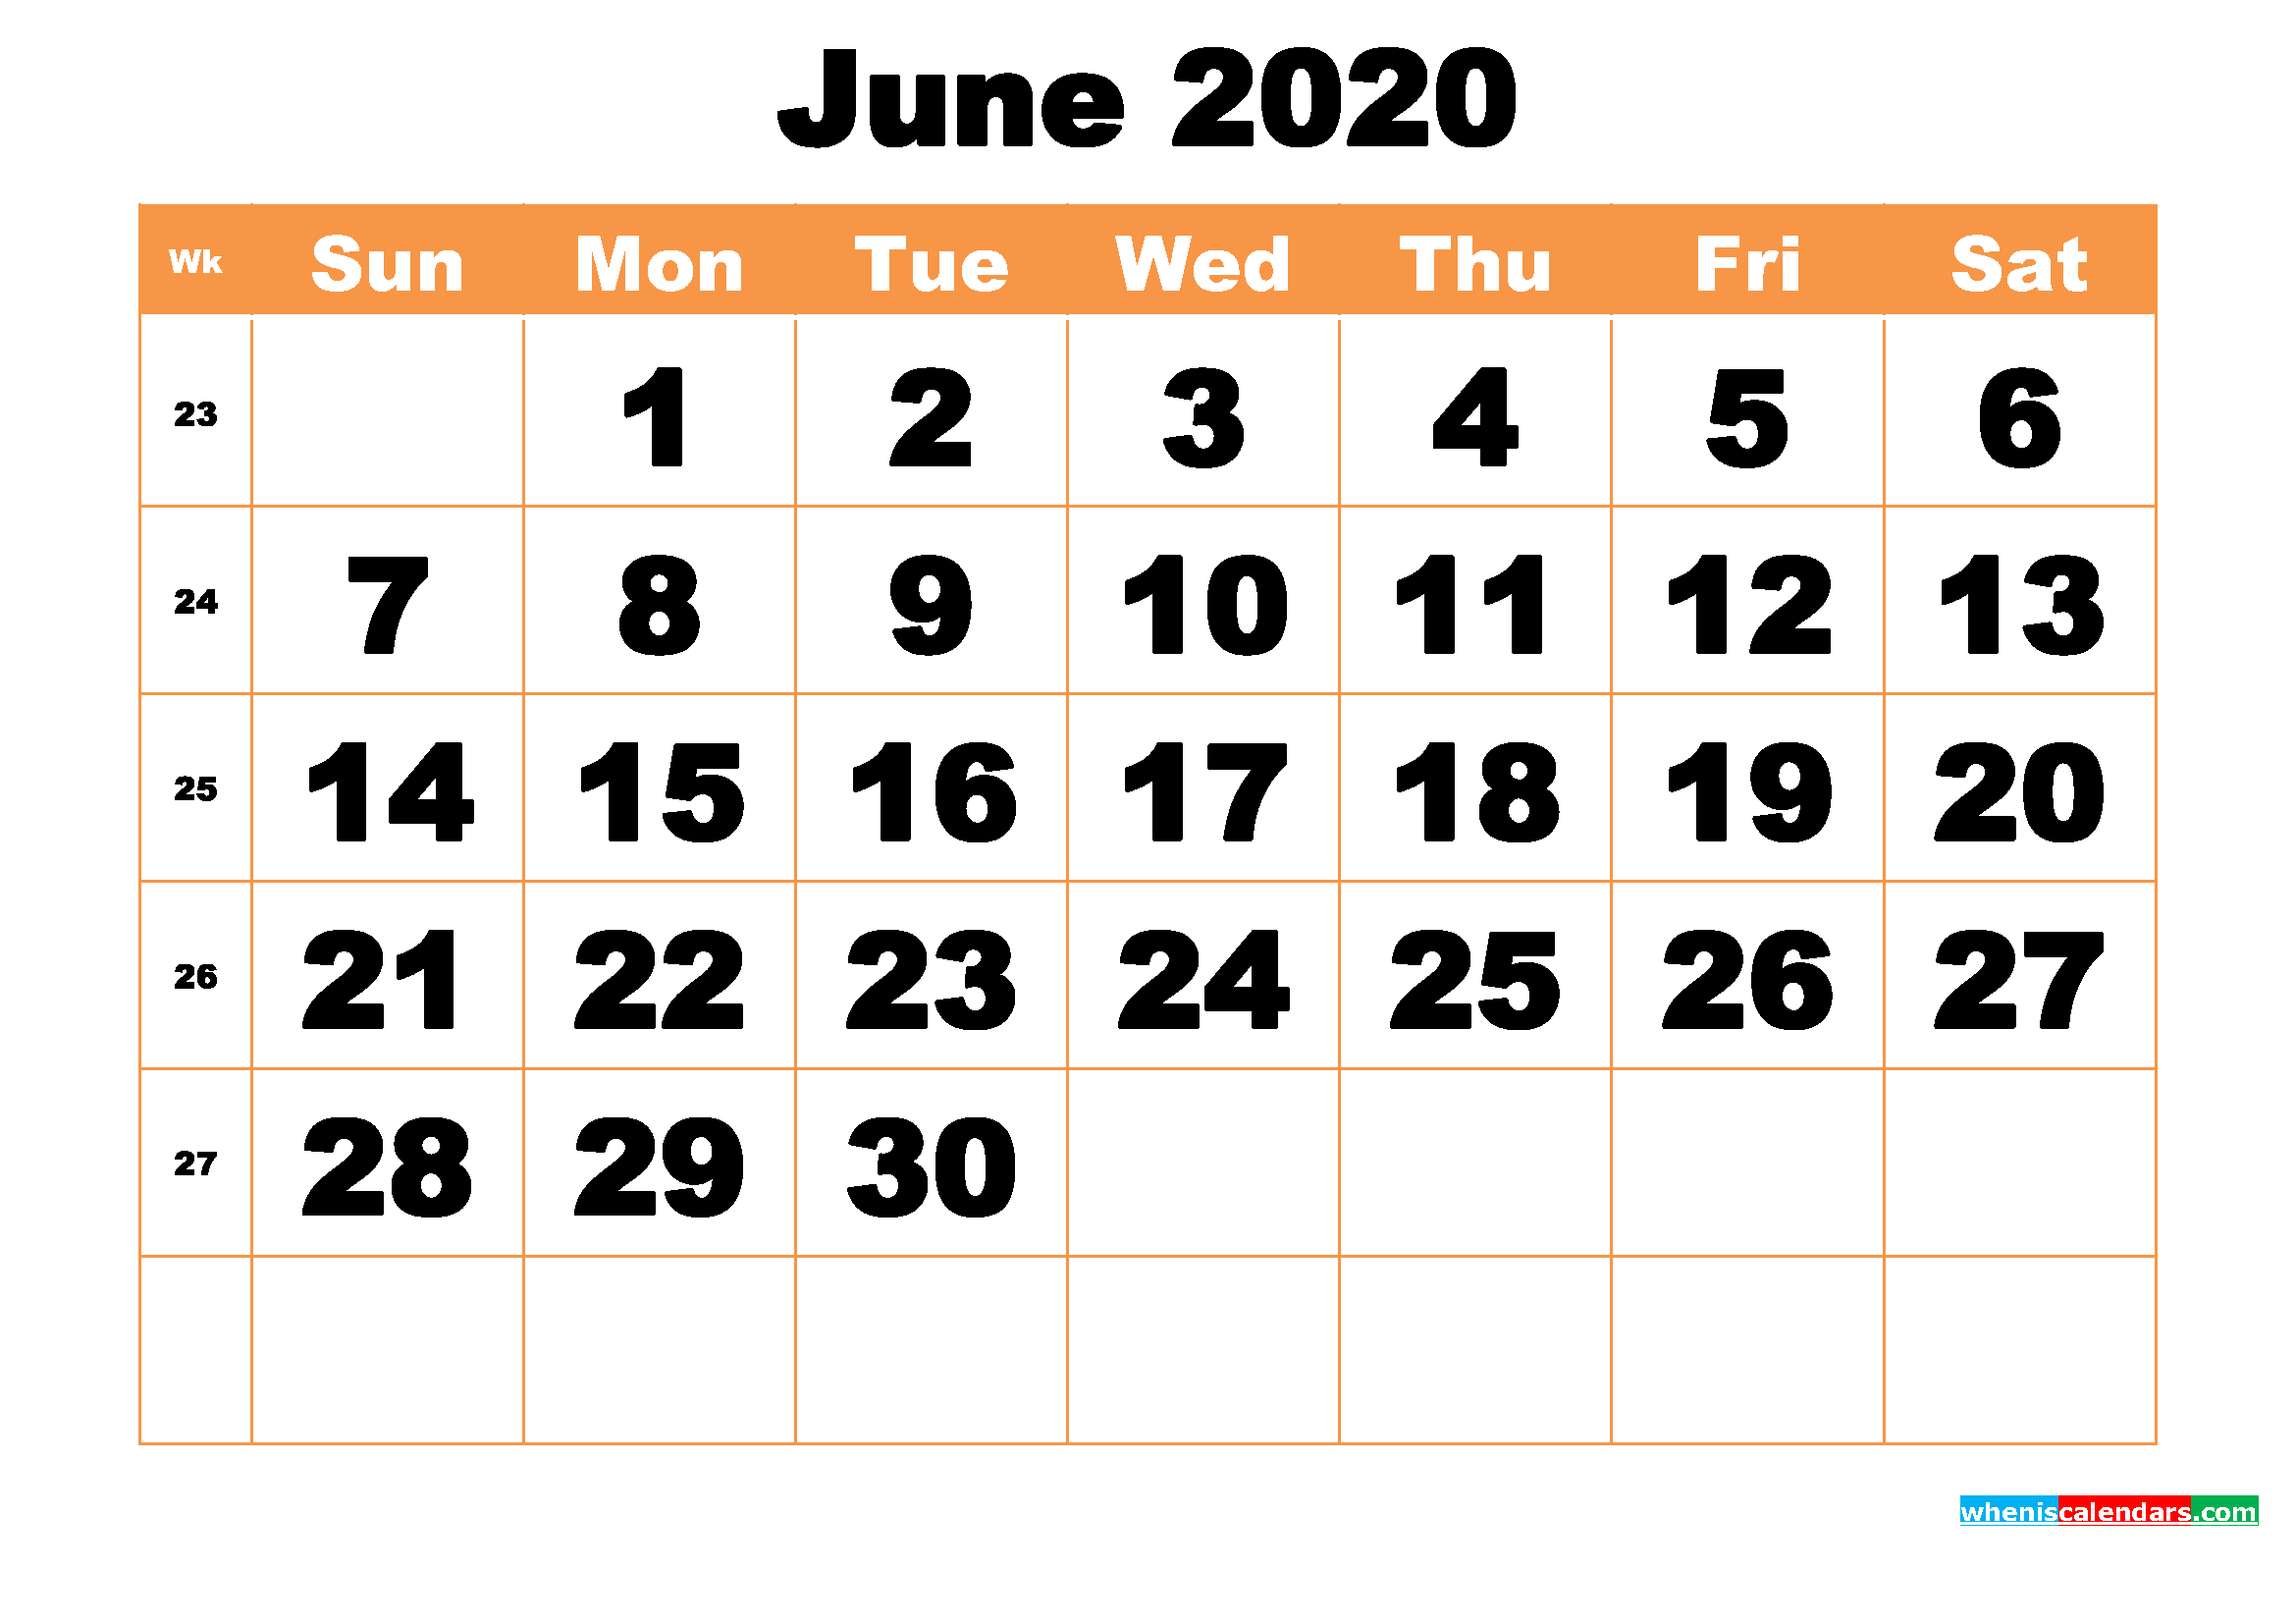 Free Printable June 2020 Calendar Word, PDF, Image